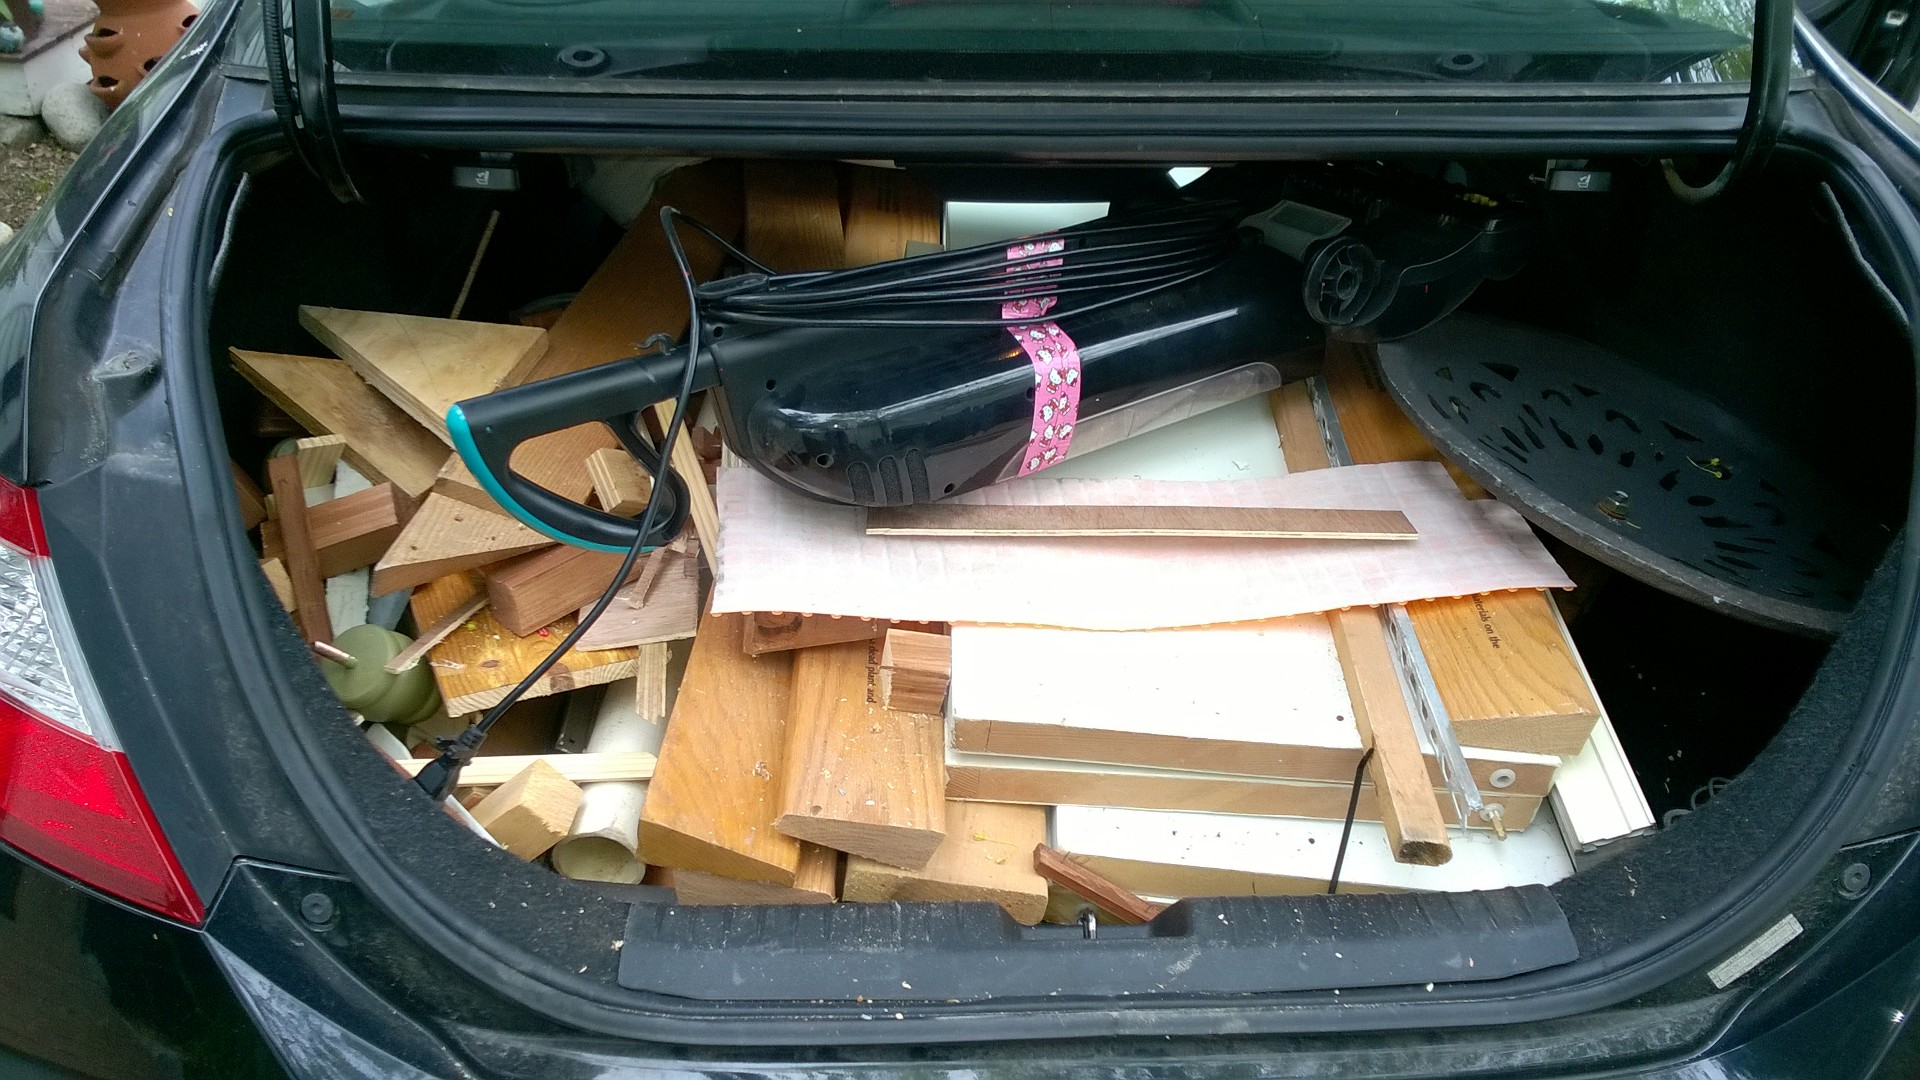 I Went to THE DUMP!